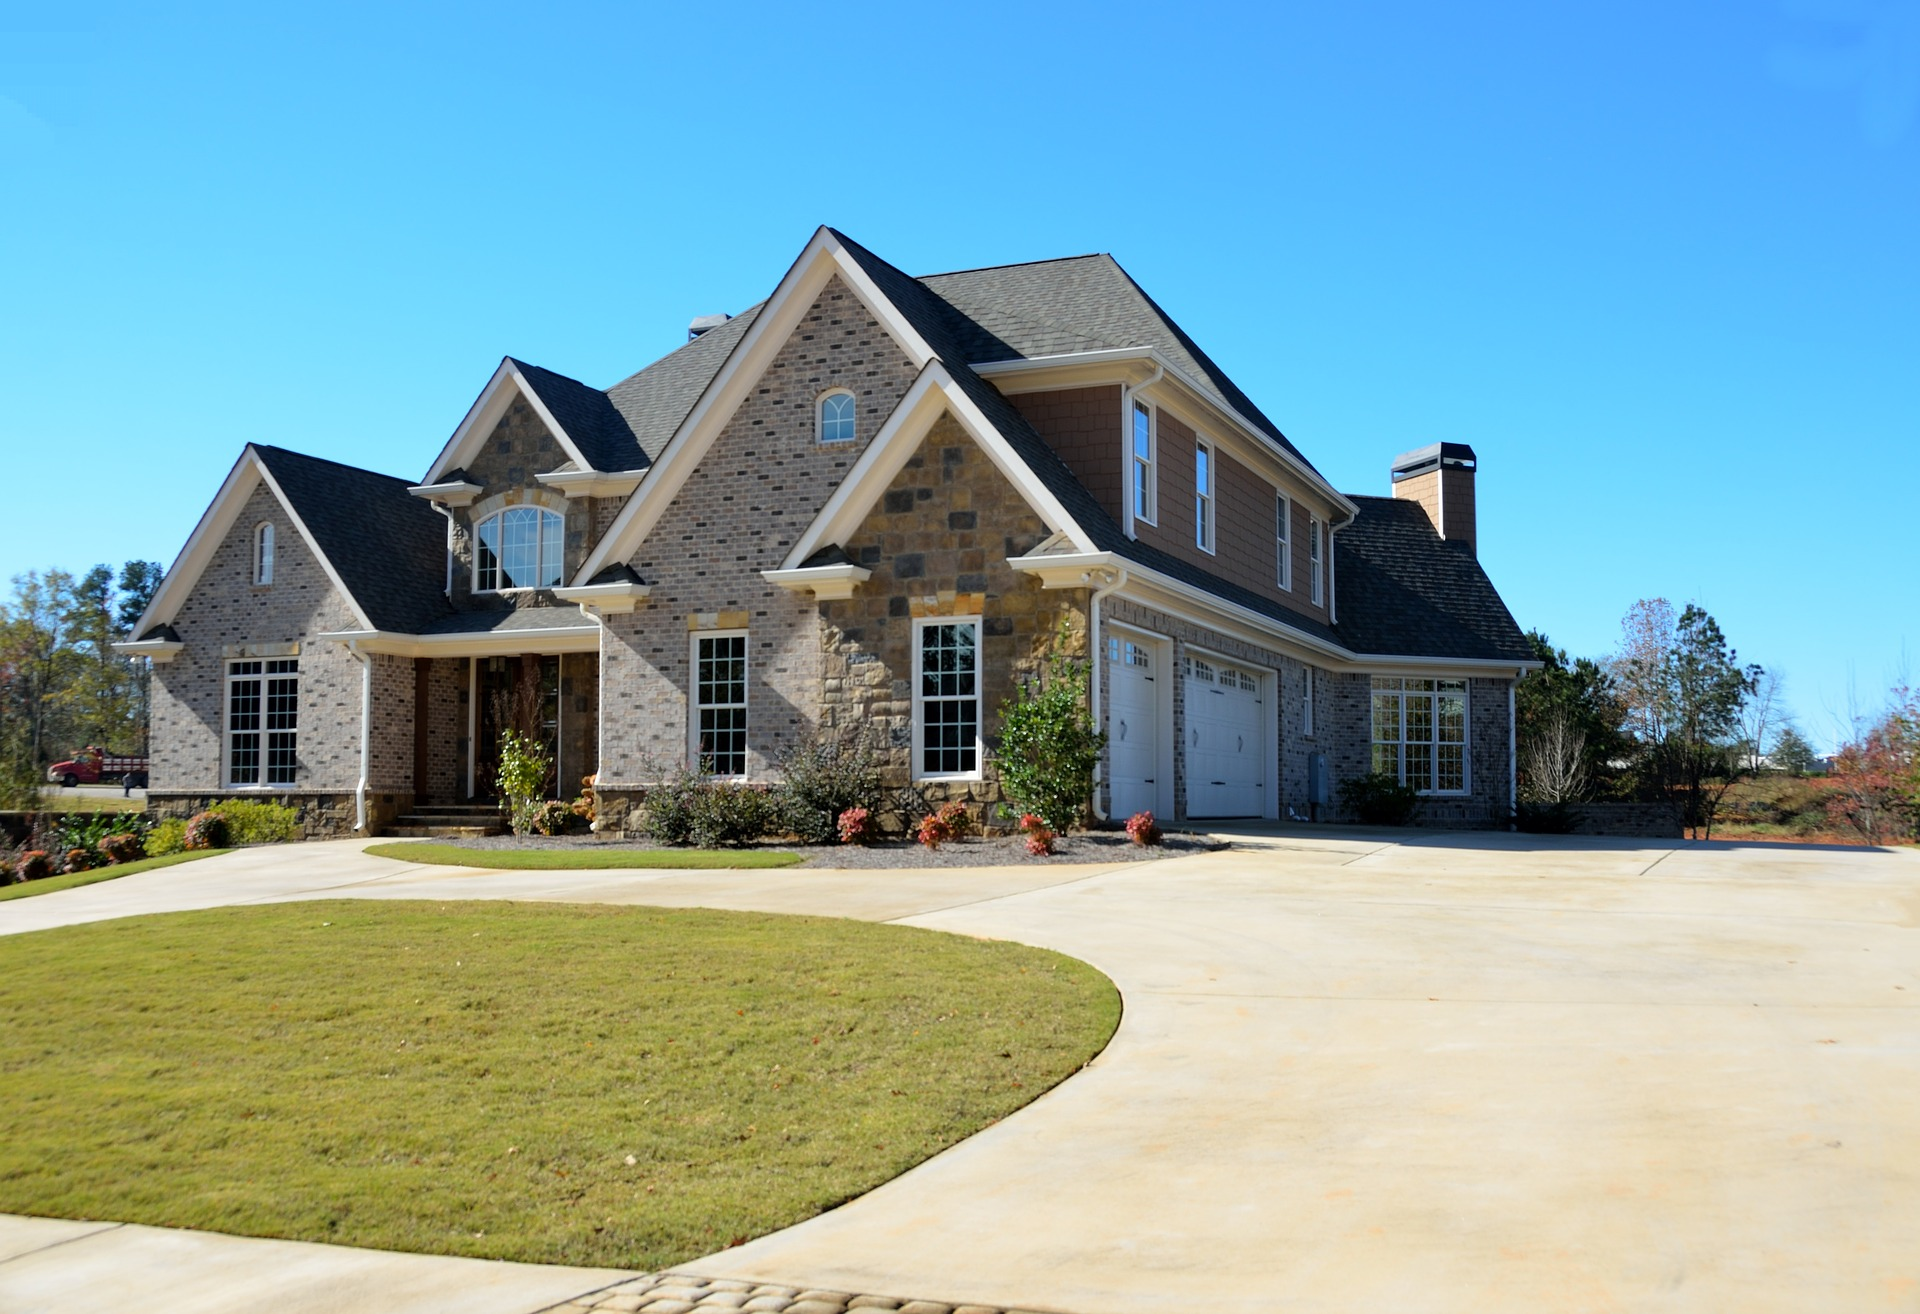 newly landscaped home